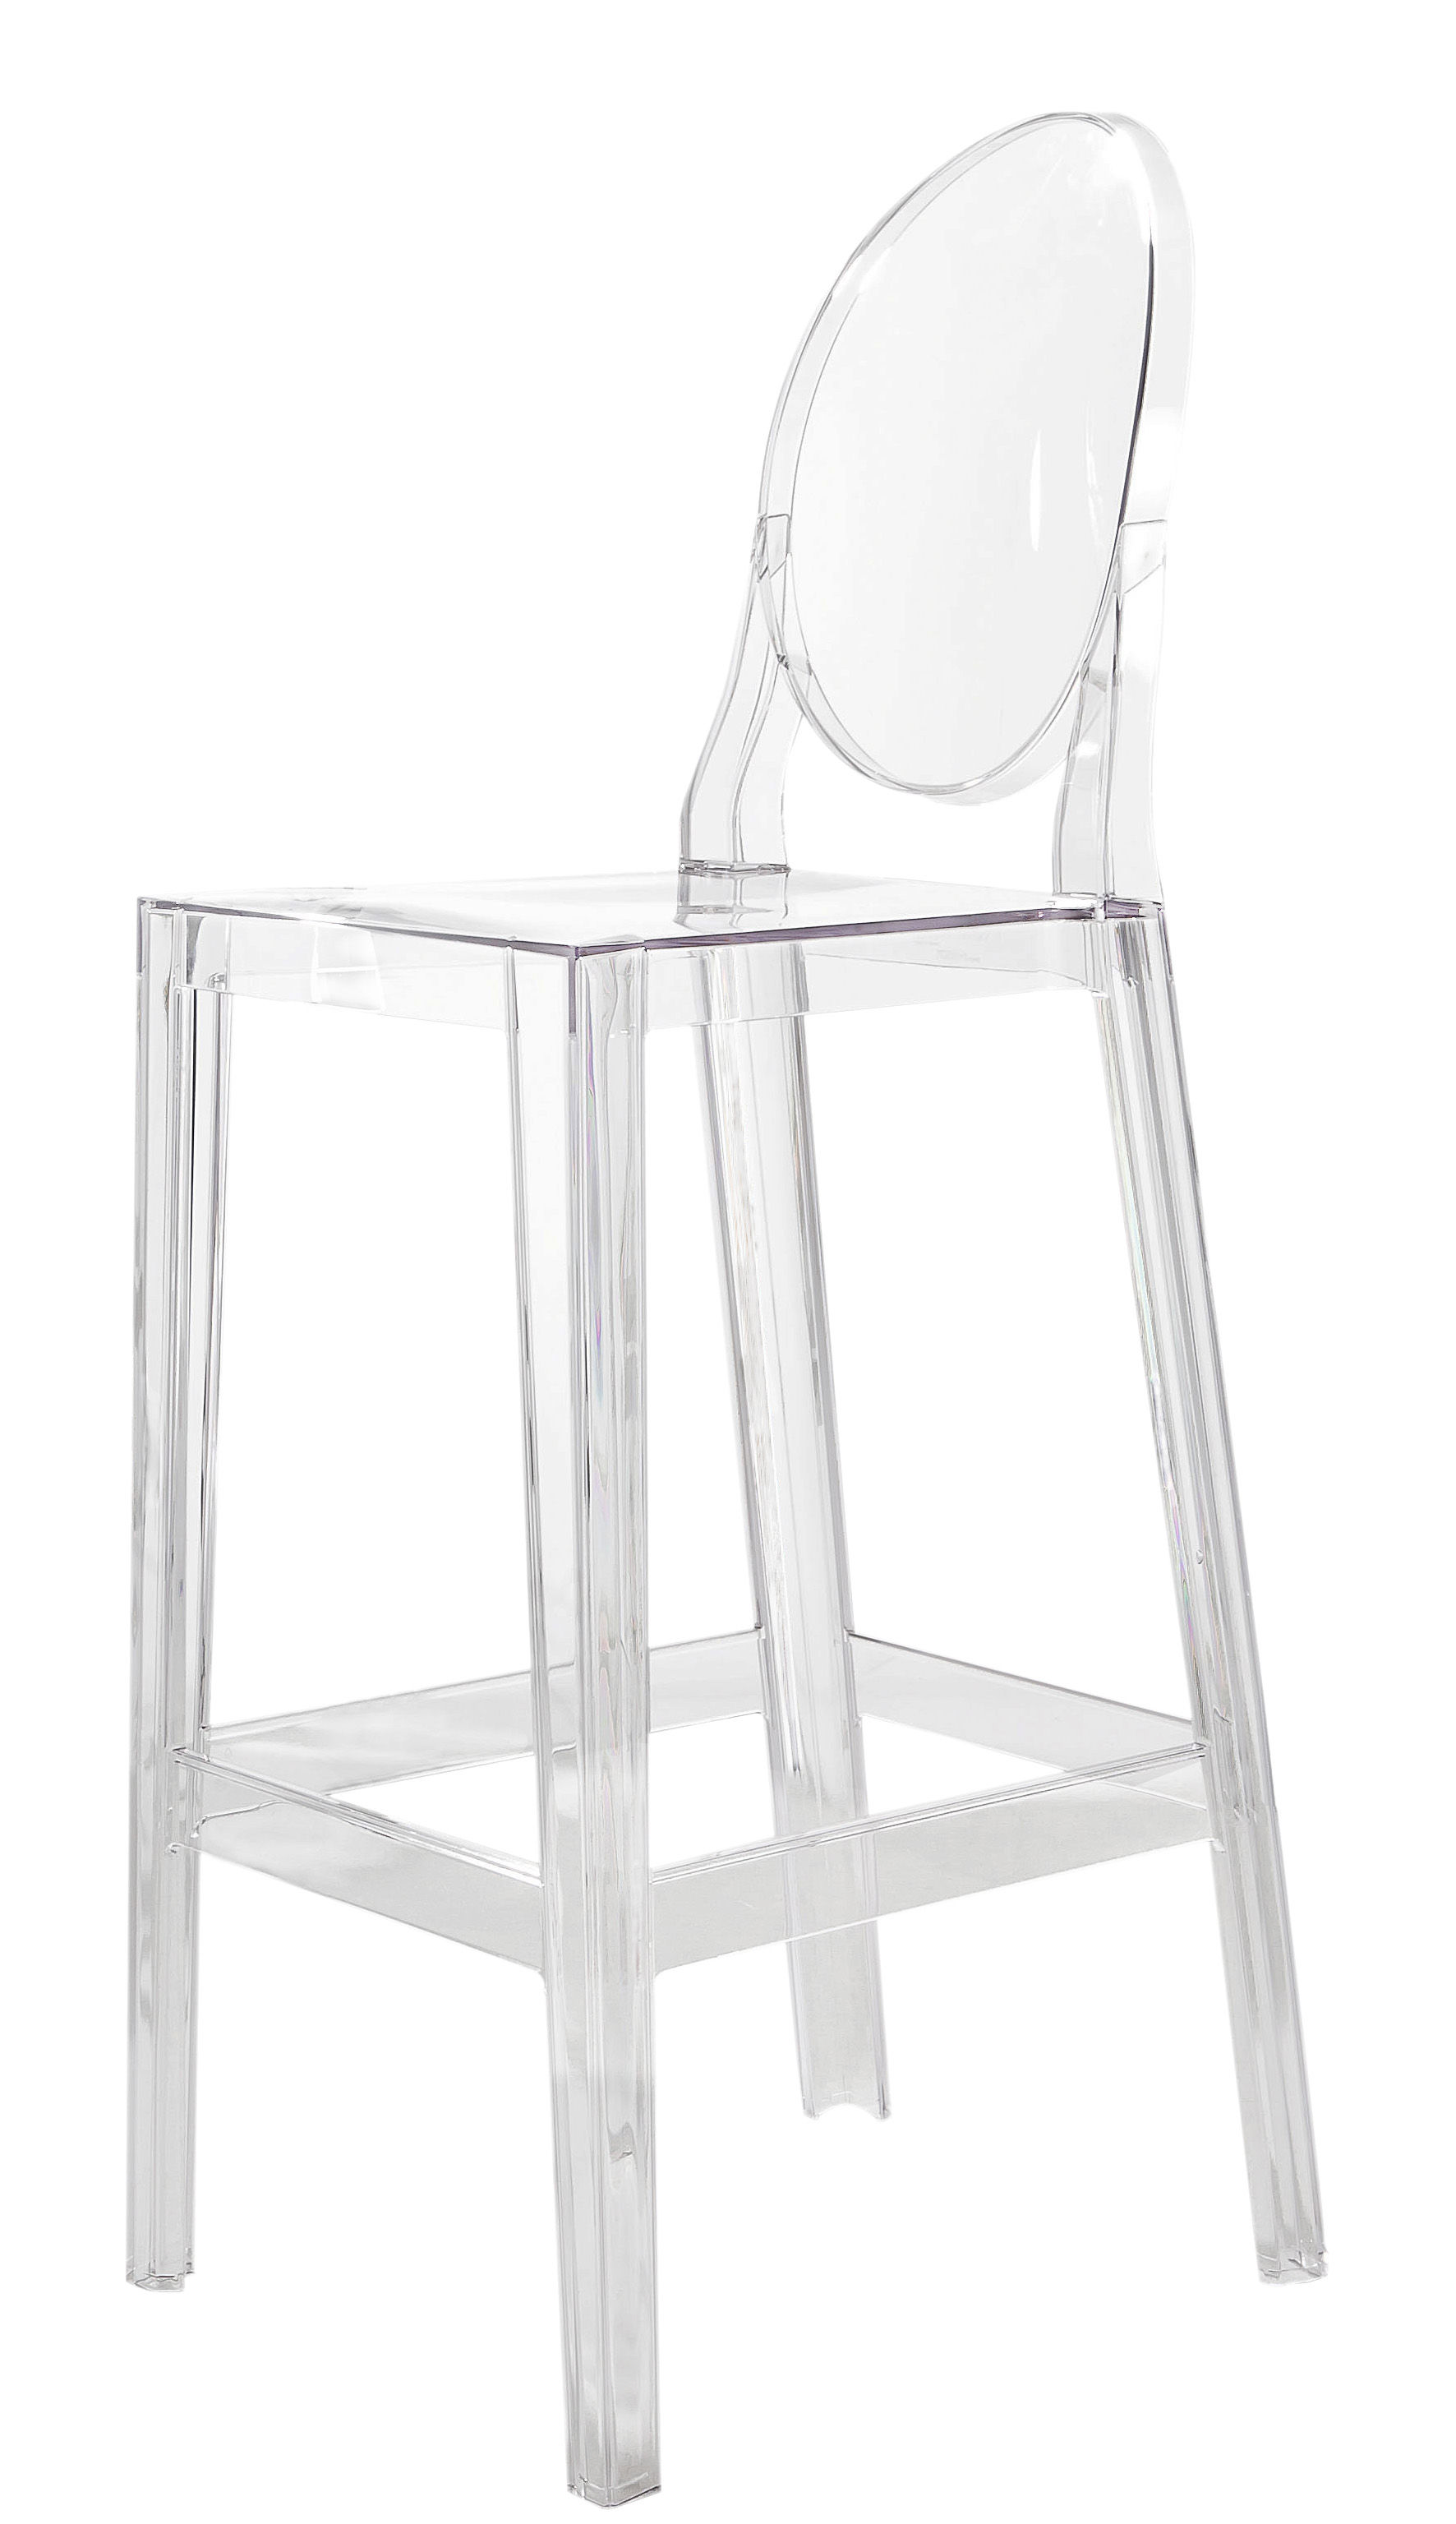 Tabouret De Bar Starck Tabouret Bar Starck Excellent Charles Ghost With Tabouret